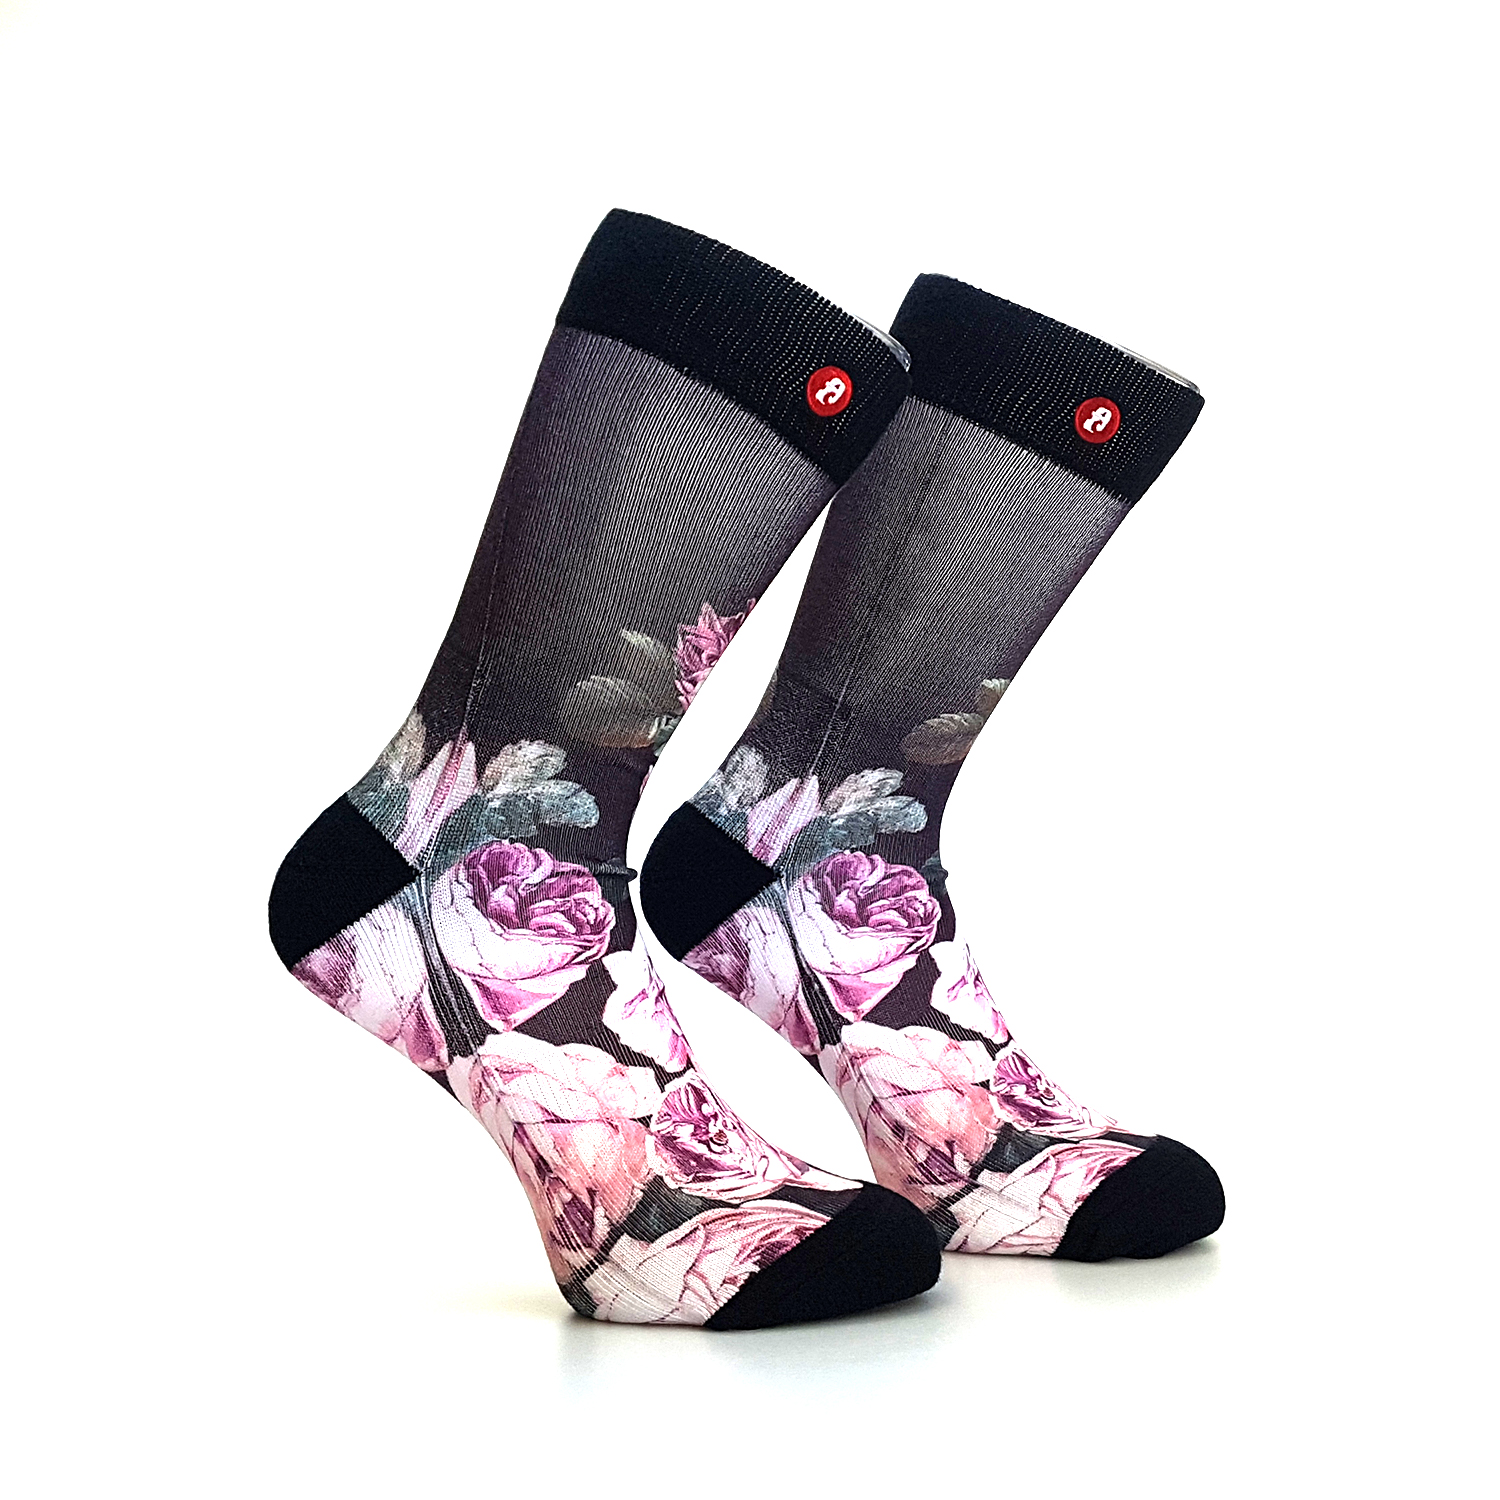 Design your own Full Colour Printed Sublimation socks. Tailor Made Full Colour Printed Sublimation socks with logo